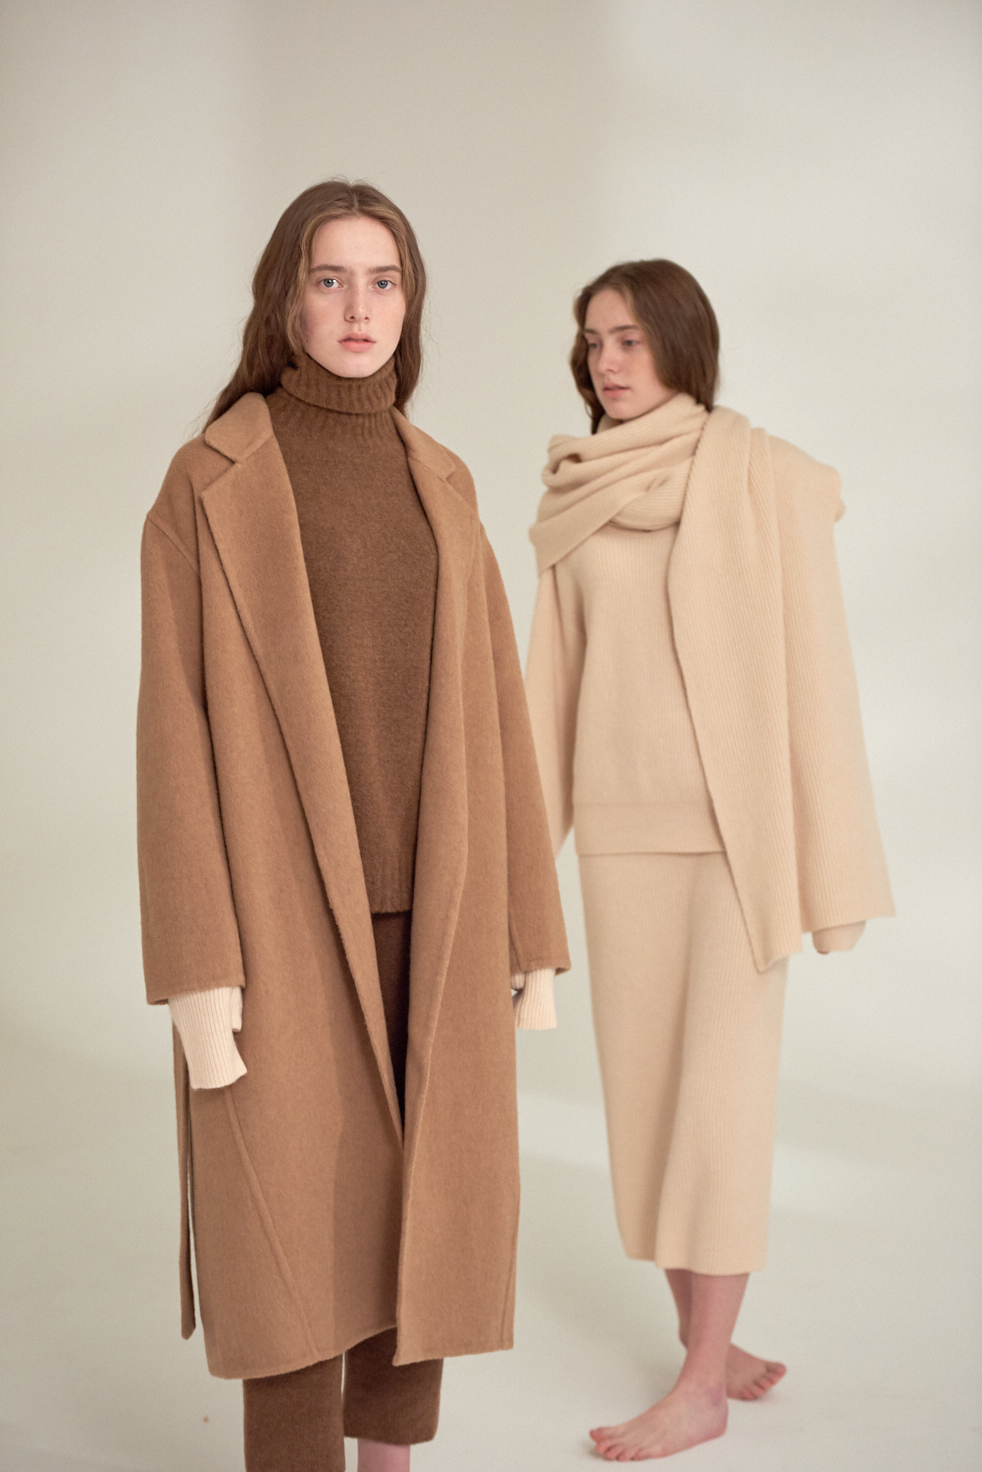 Camel coat by ARCH THE. Available in early August.